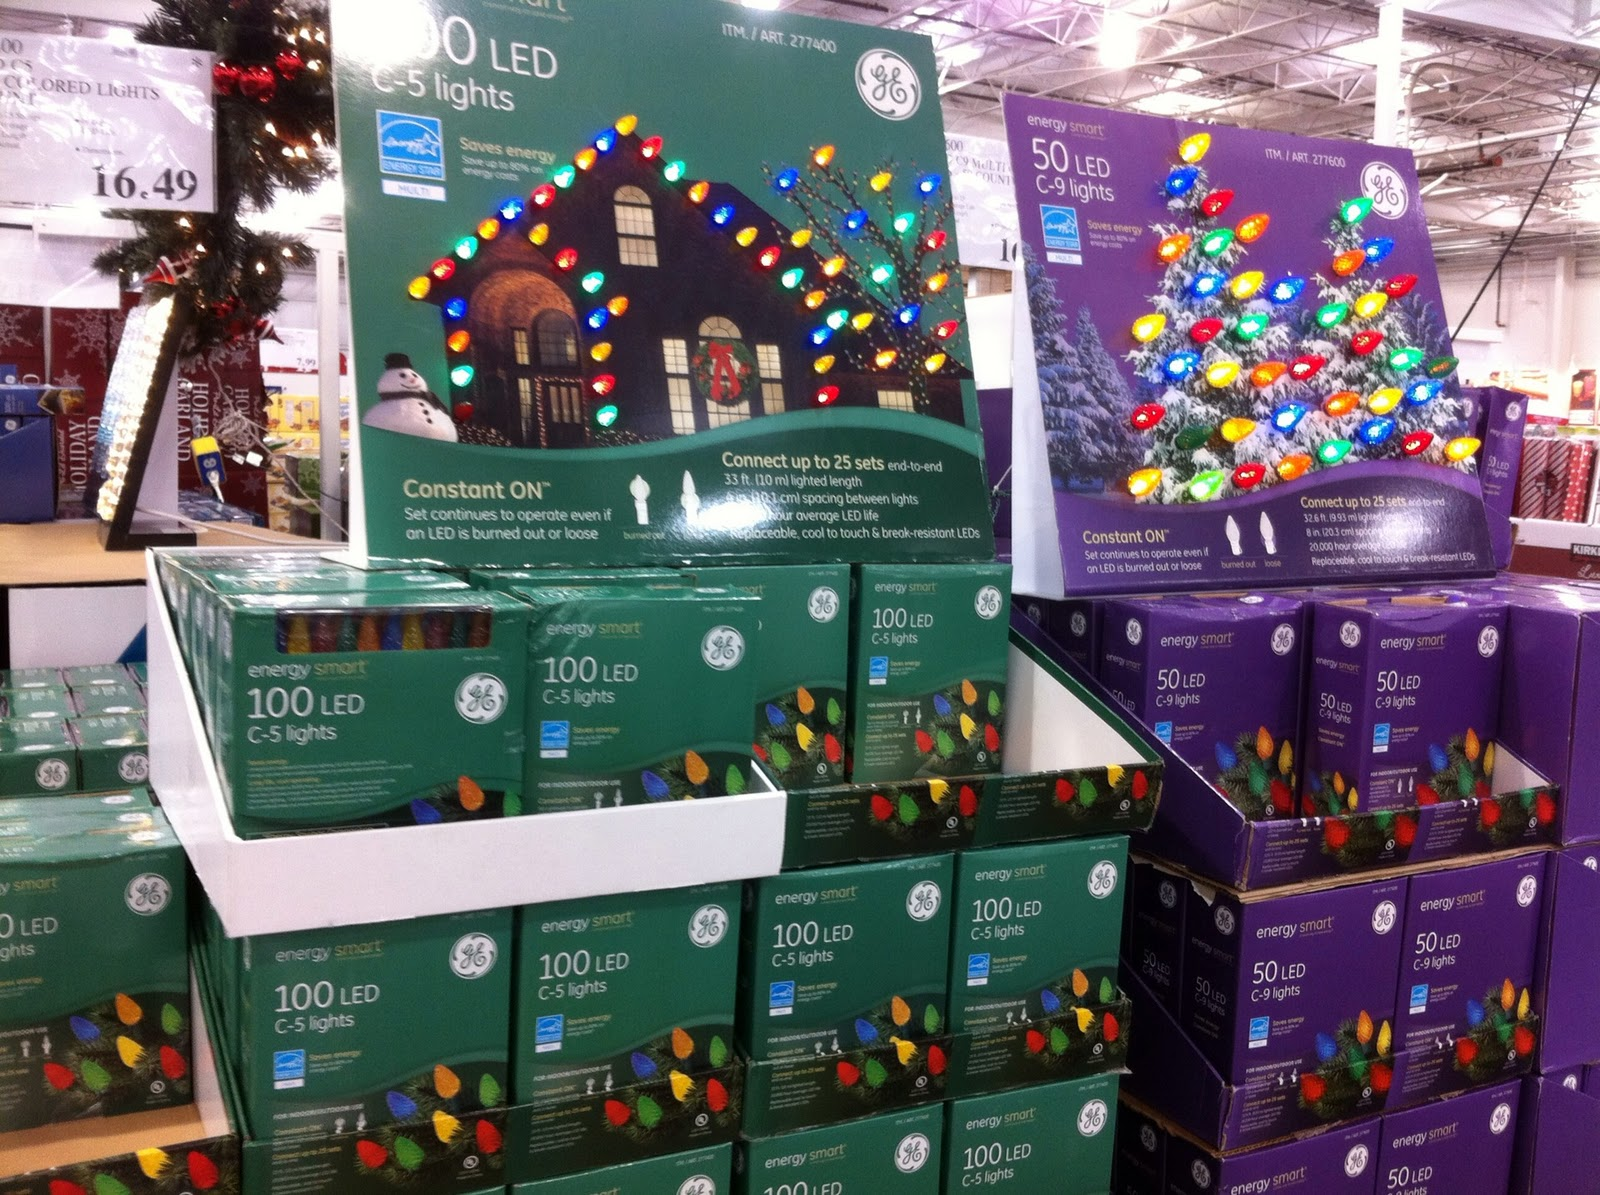 Merry Costco Christmas | Friday Tidings